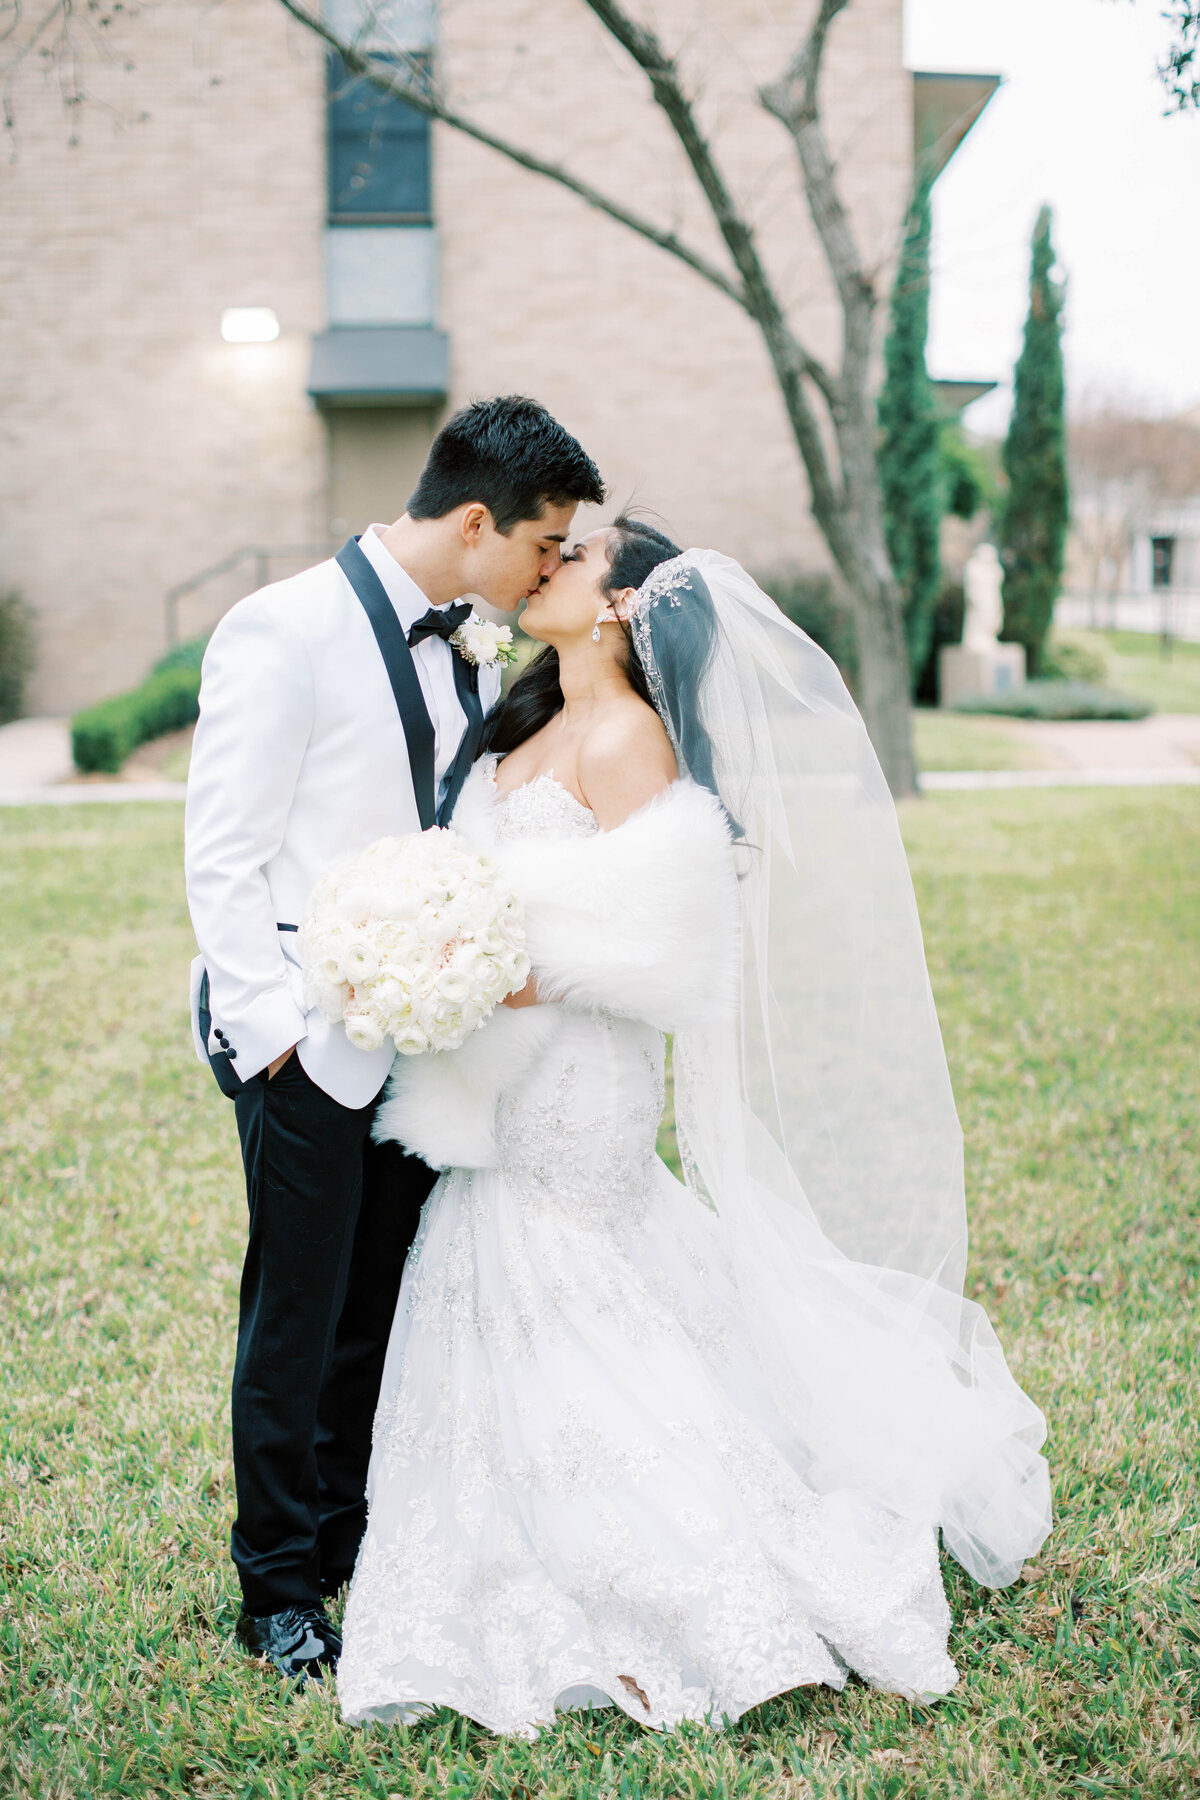 South Texas Wedding Photography | Jenny King Photography | Serving Victoria, Austin, San Antonio, Houston, Destinations